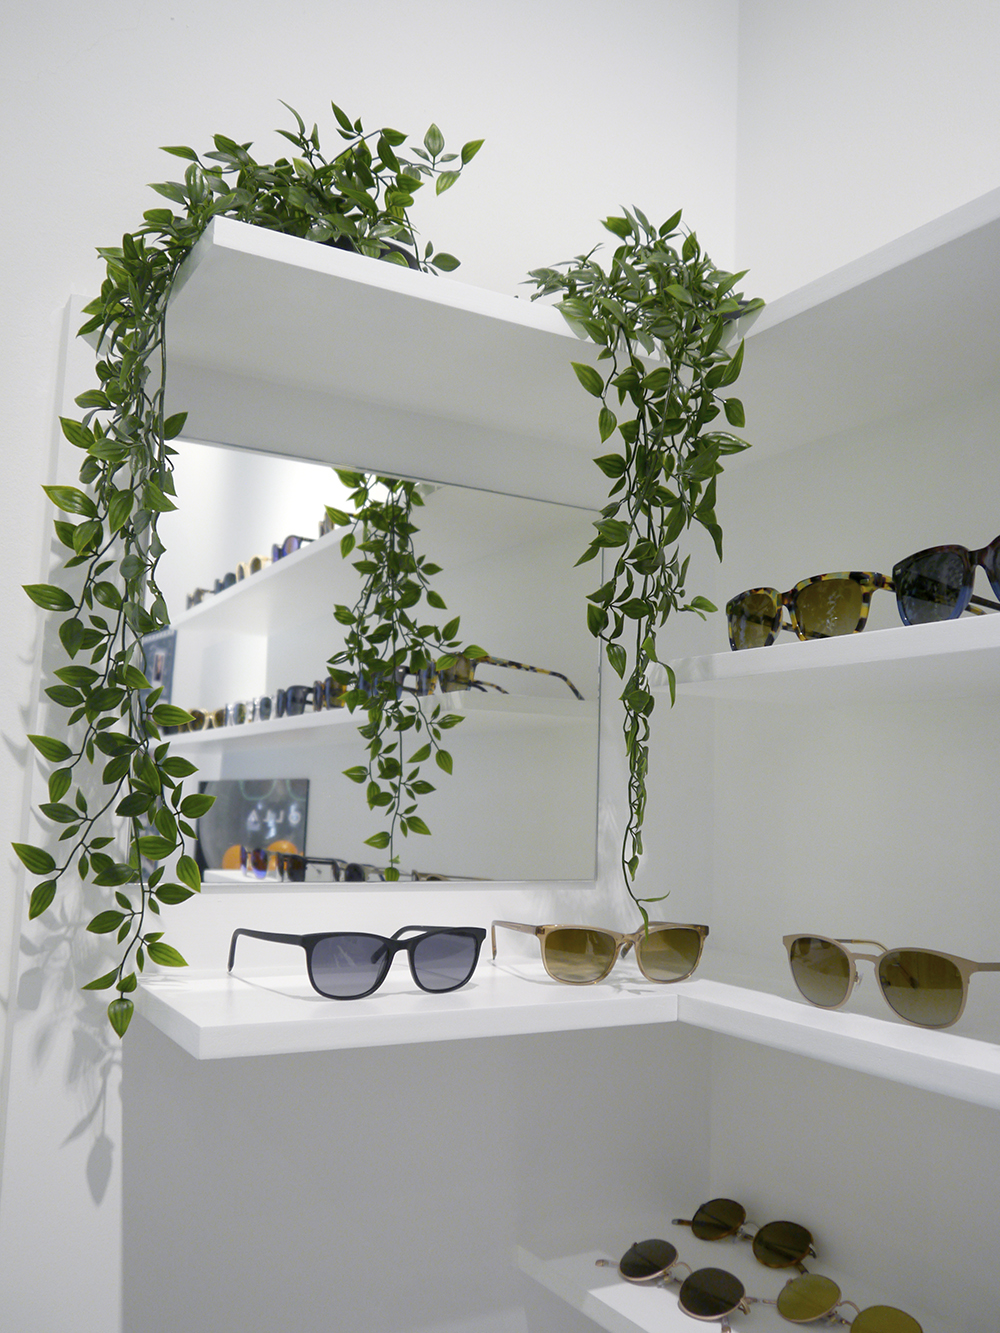 5 top tips for making shoppin for eyewear easy, painless and fun